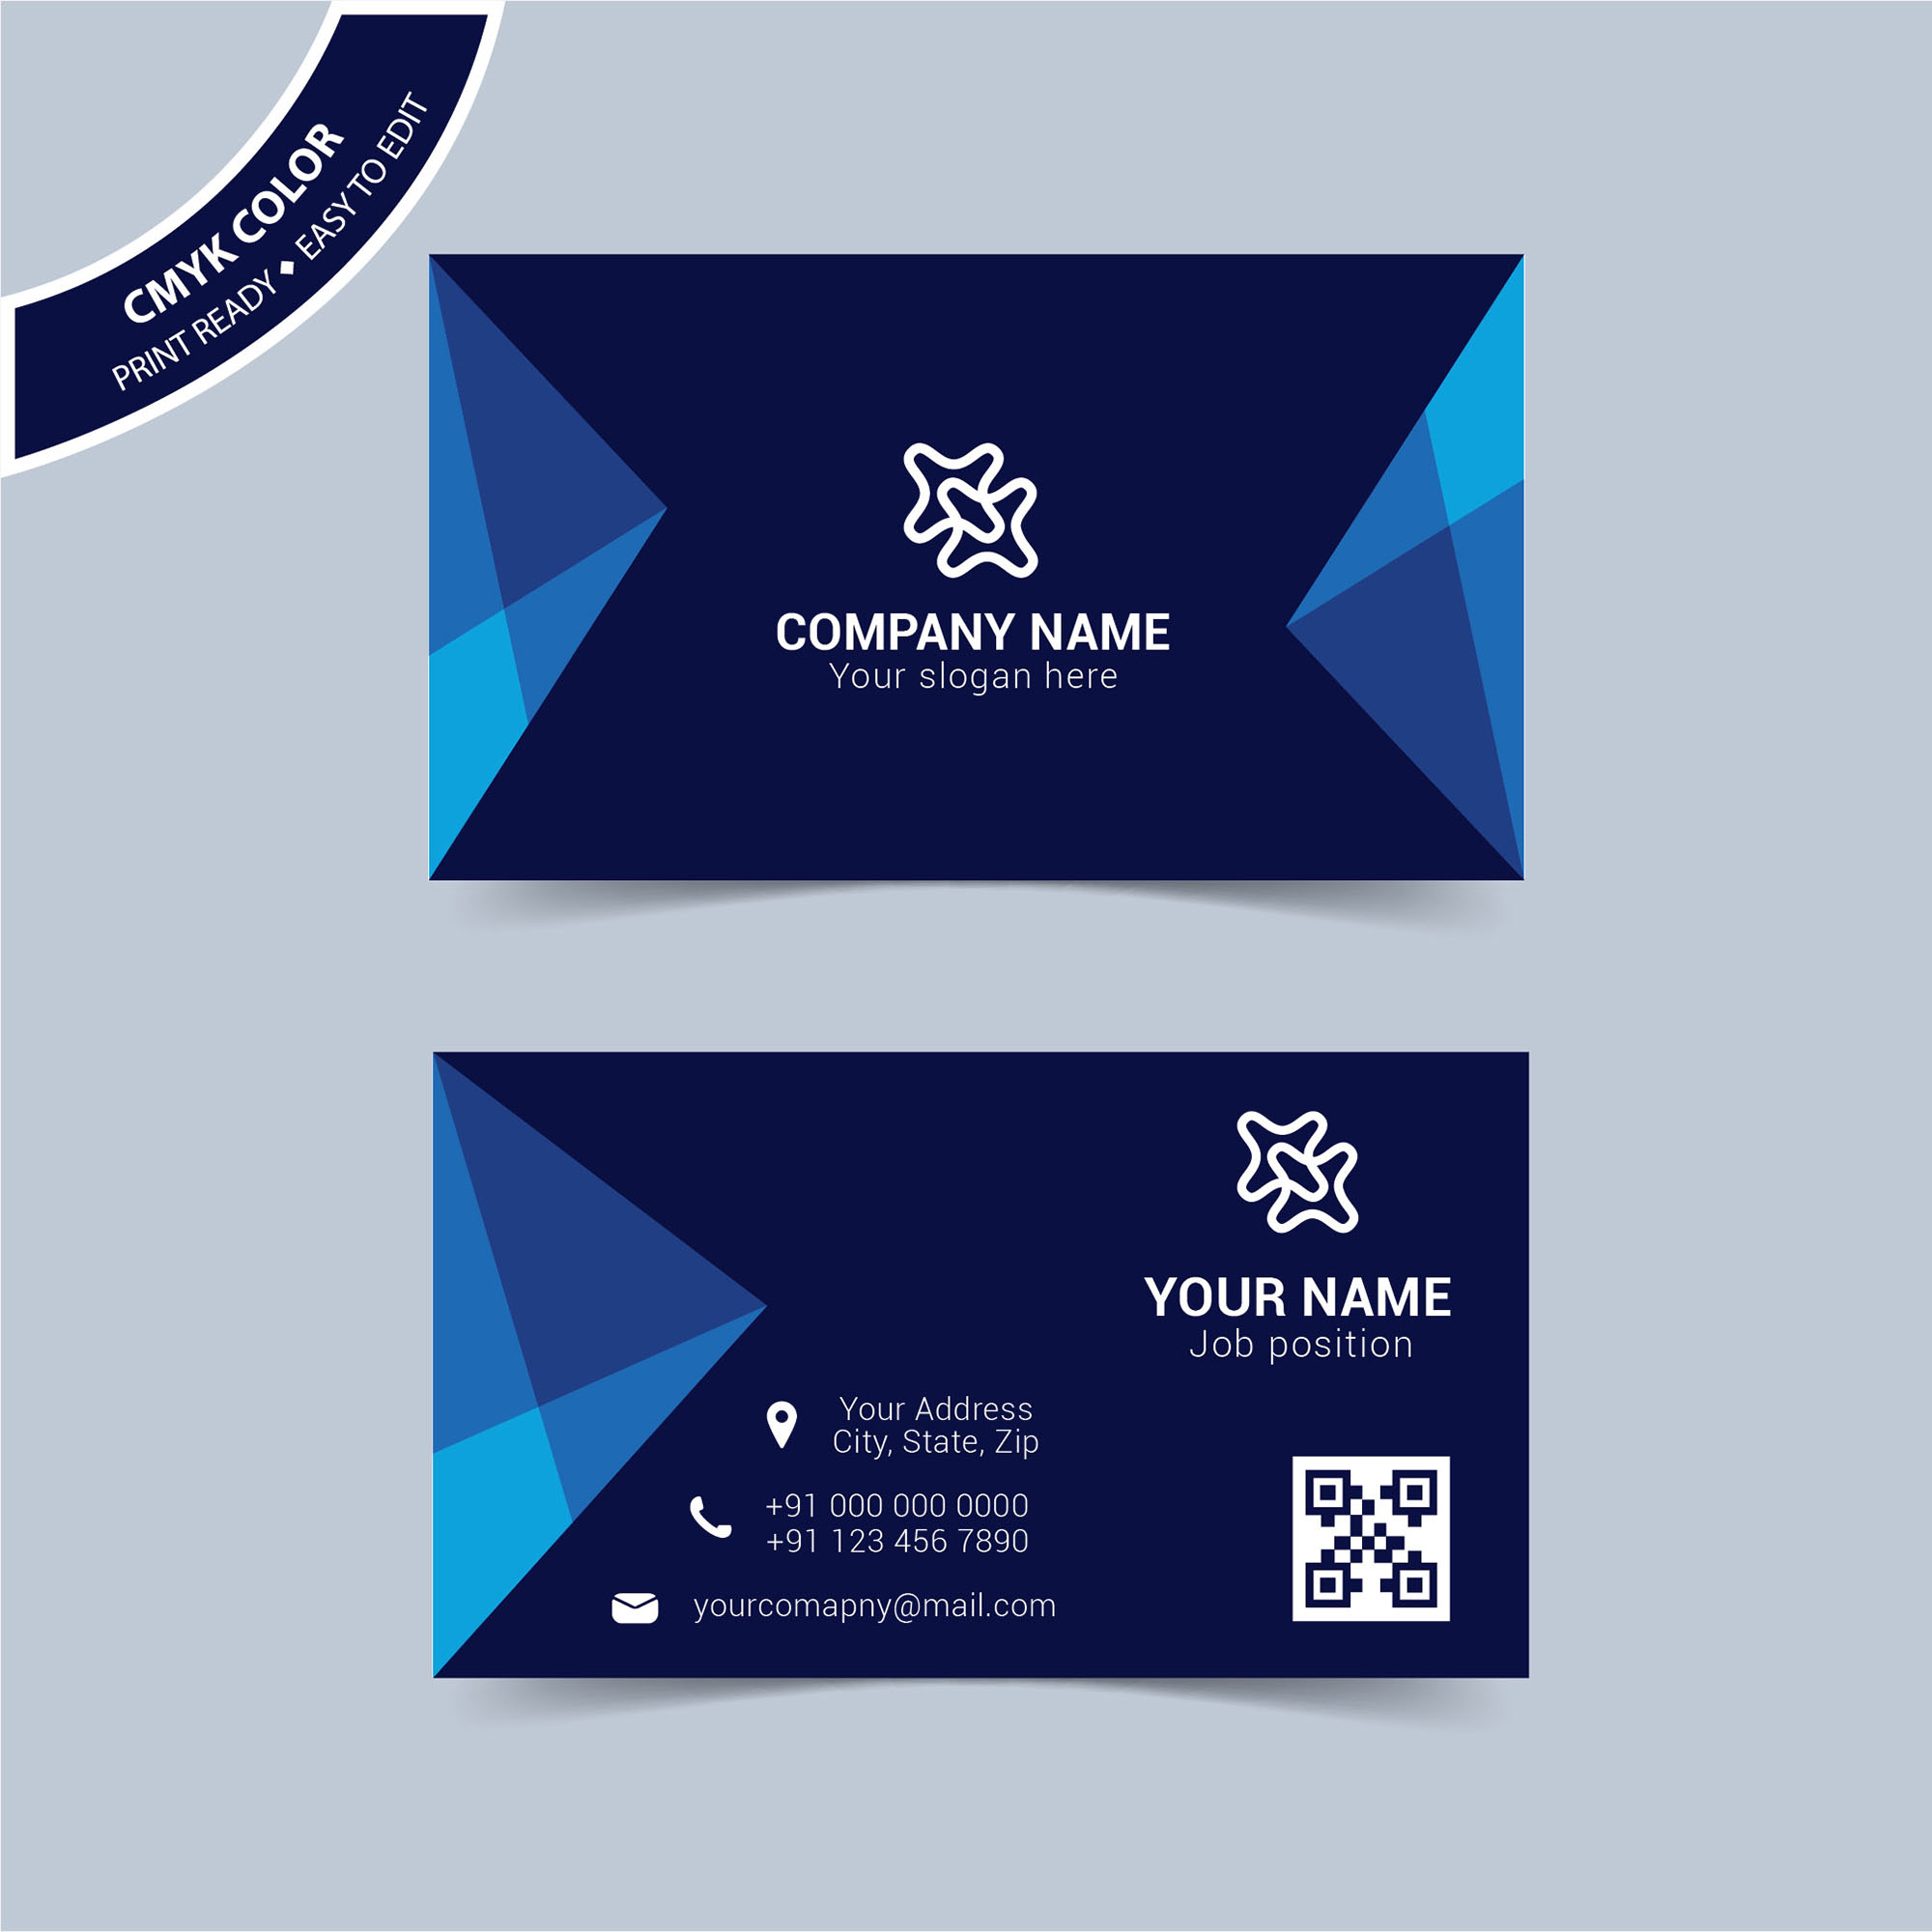 Modern blue business card template free download wisxi business card business cards business card design business card template design templates cheaphphosting Images